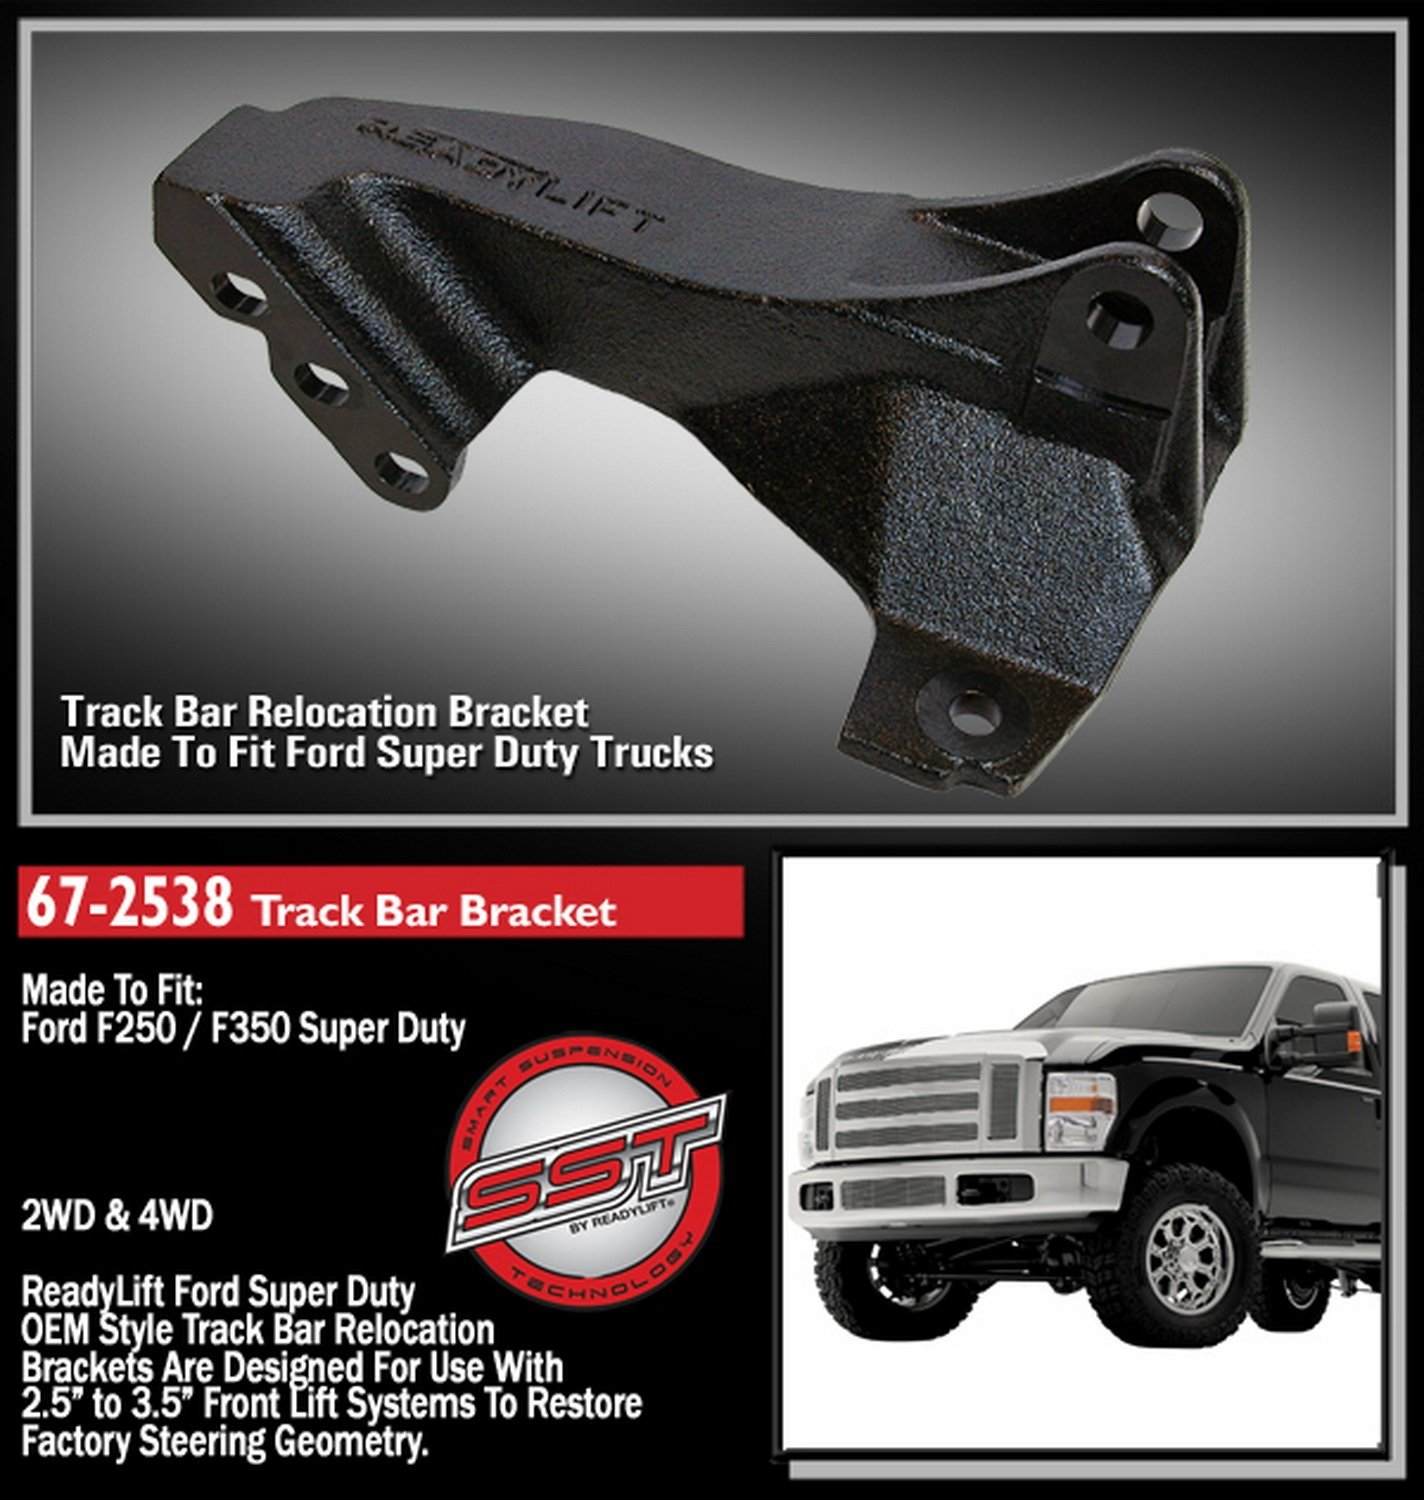 ReadyLift 67-2538 Track Bar Relocation Bracket for F250/F350/F450 by Readylift (Image #2)